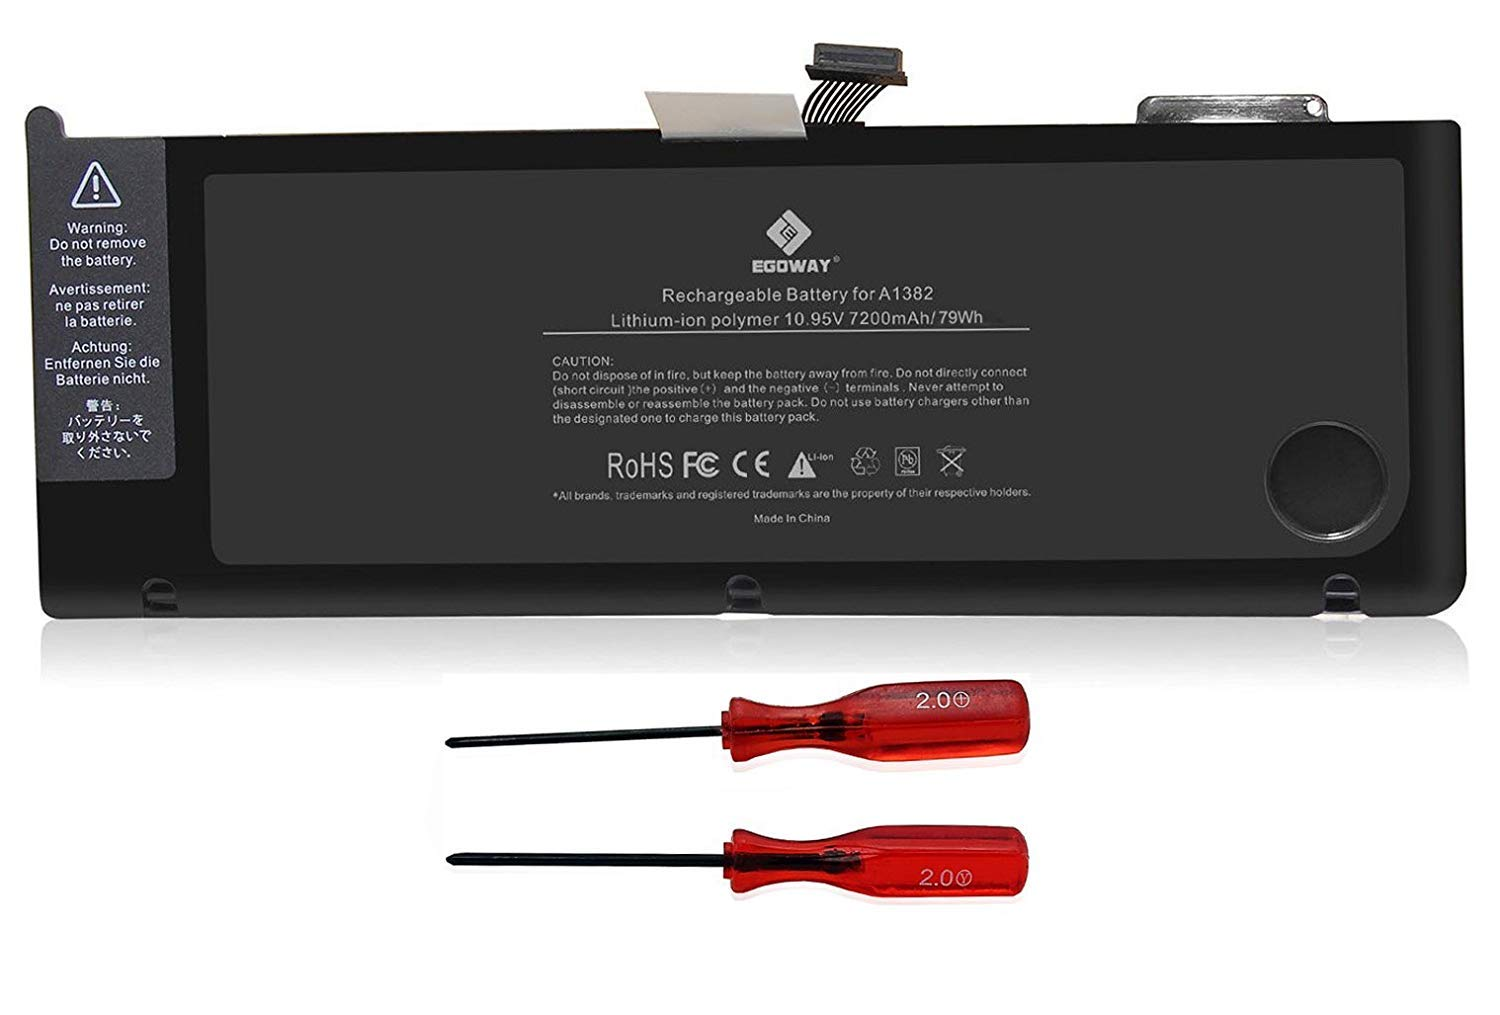 E EGOWAY Replacement Laptop Battery Compatible for MacBook Pro 15 inch A1382 A1286 Early and Late 2011, Mid 2012 by E EGOWAY (Image #1)